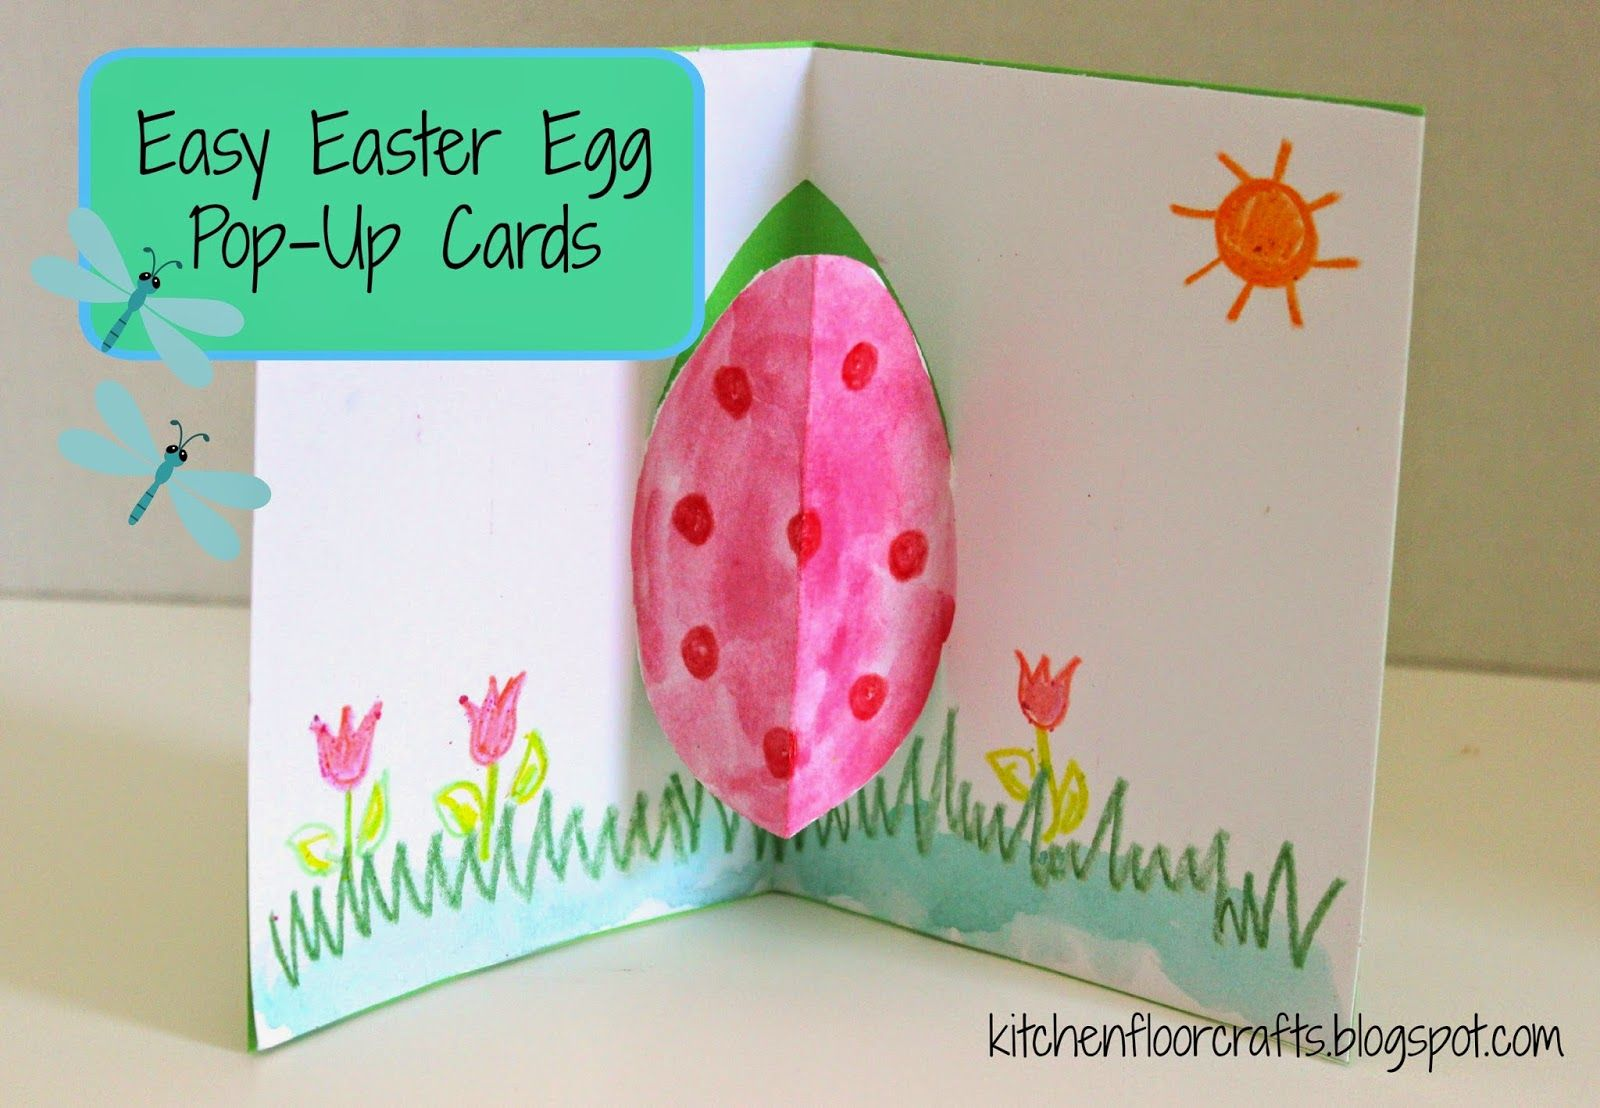 Kitchen floor crafts easy easter egg pop up card cards gifts ideas on how to make pop up greeting cards for birthdays valentines day mothers or fathers day pop up card ideas tutorials templates kristyandbryce Gallery